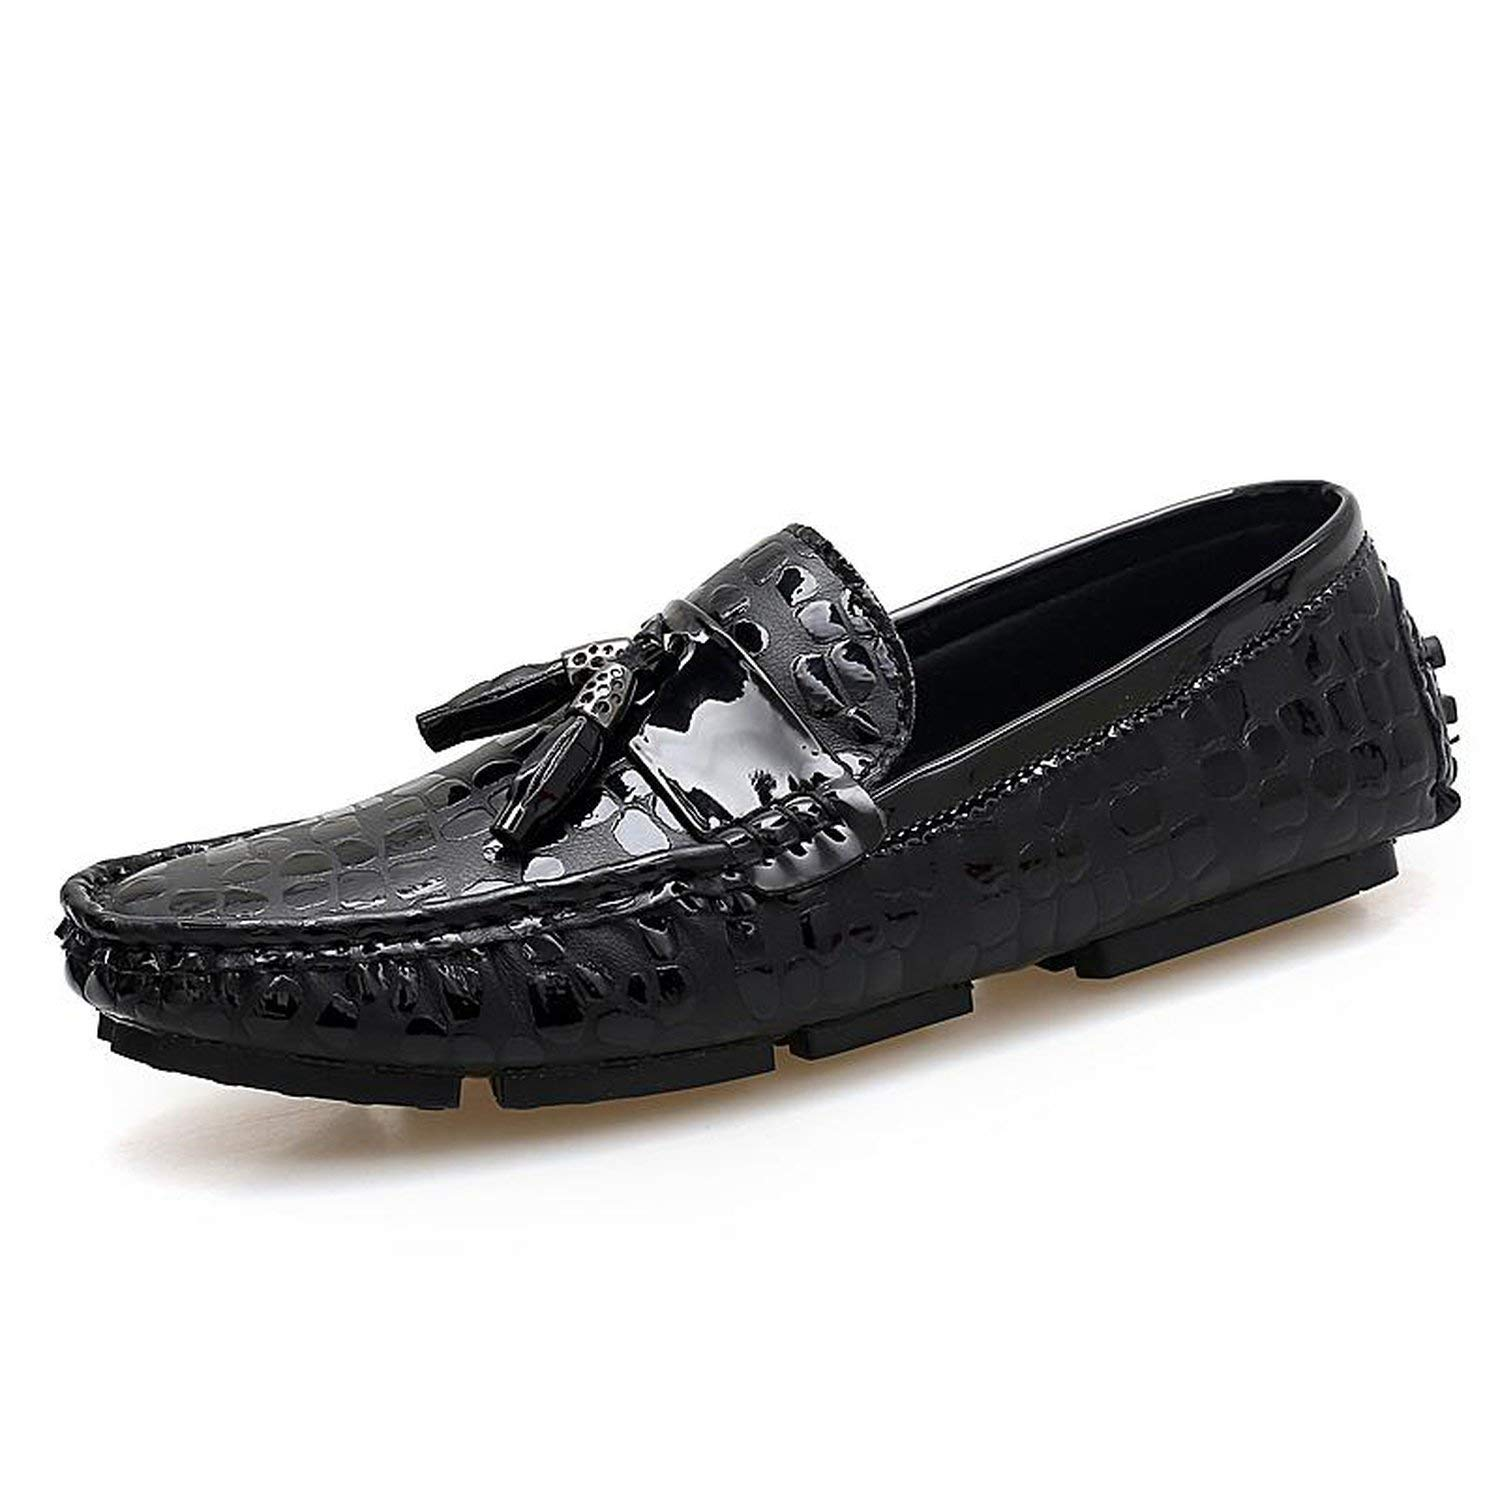 Anieca Men Loafers Shoes Italy Oxfords Business Dress Boat Summer Autumn Shoes Formal Flat Shoes Wedding